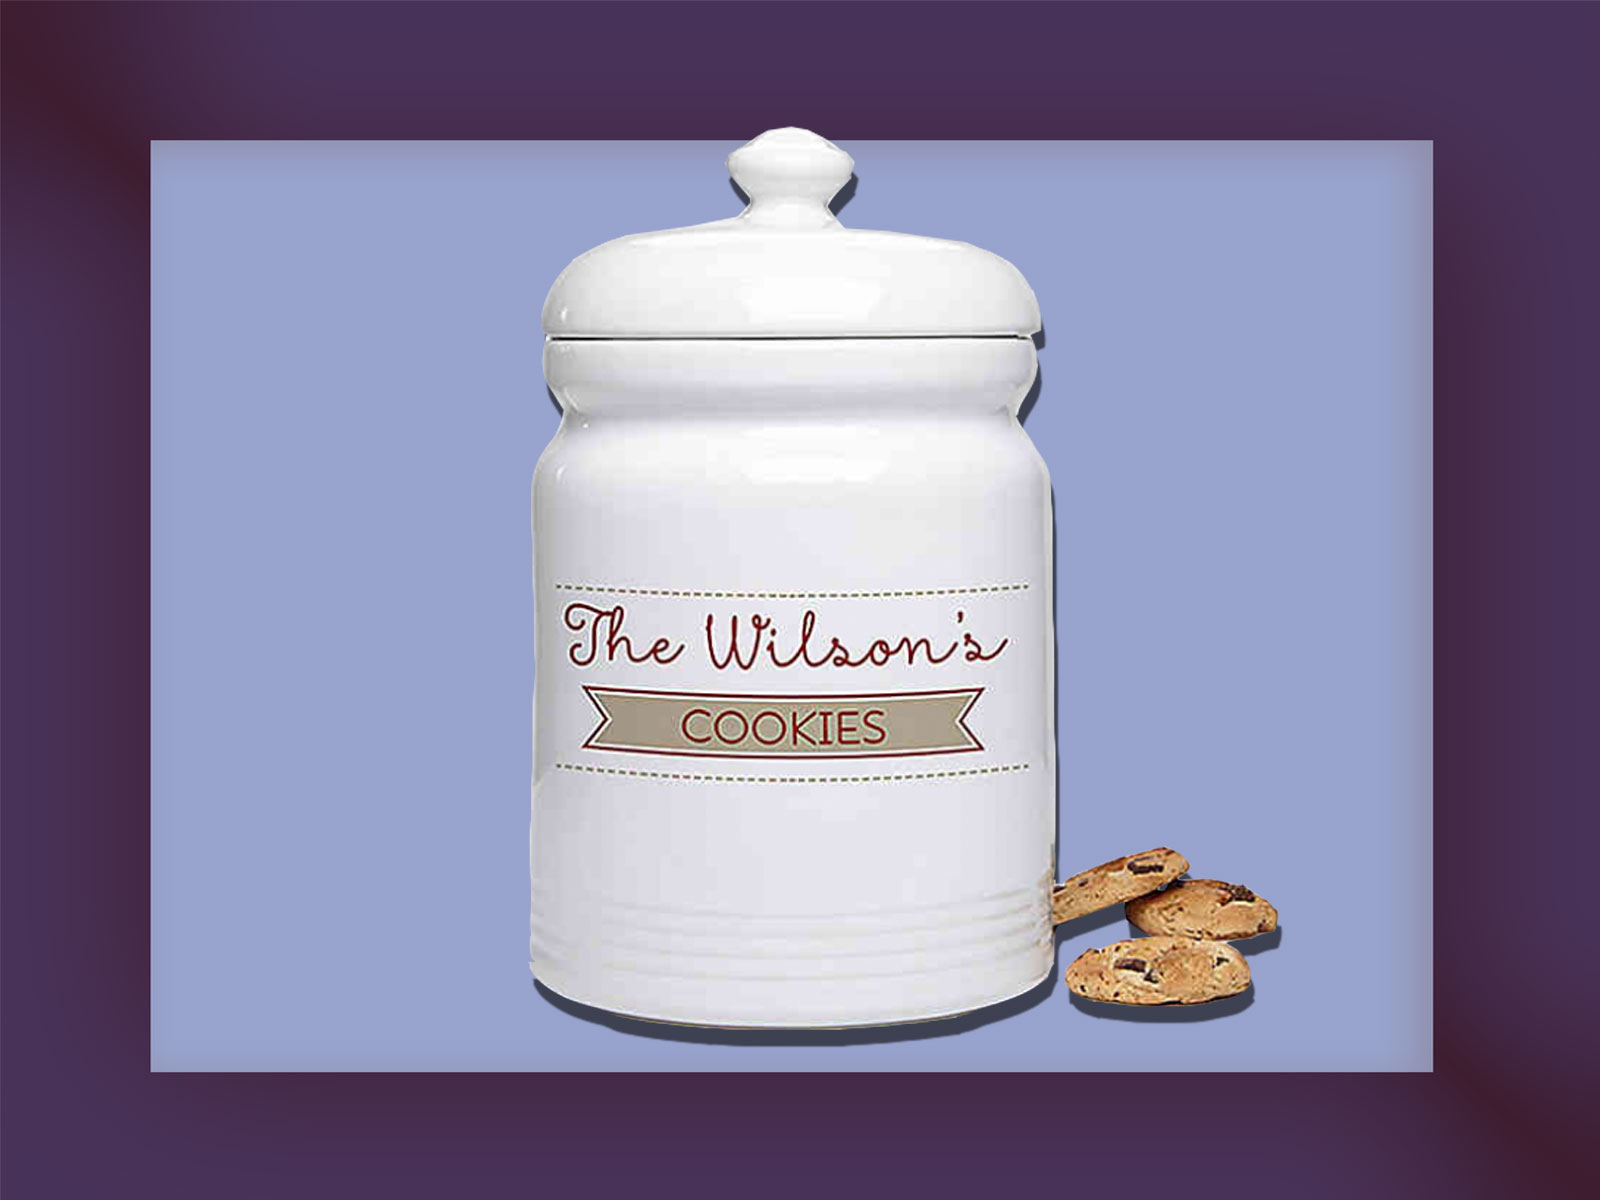 Bed Bath & Beyond Cookie Jar